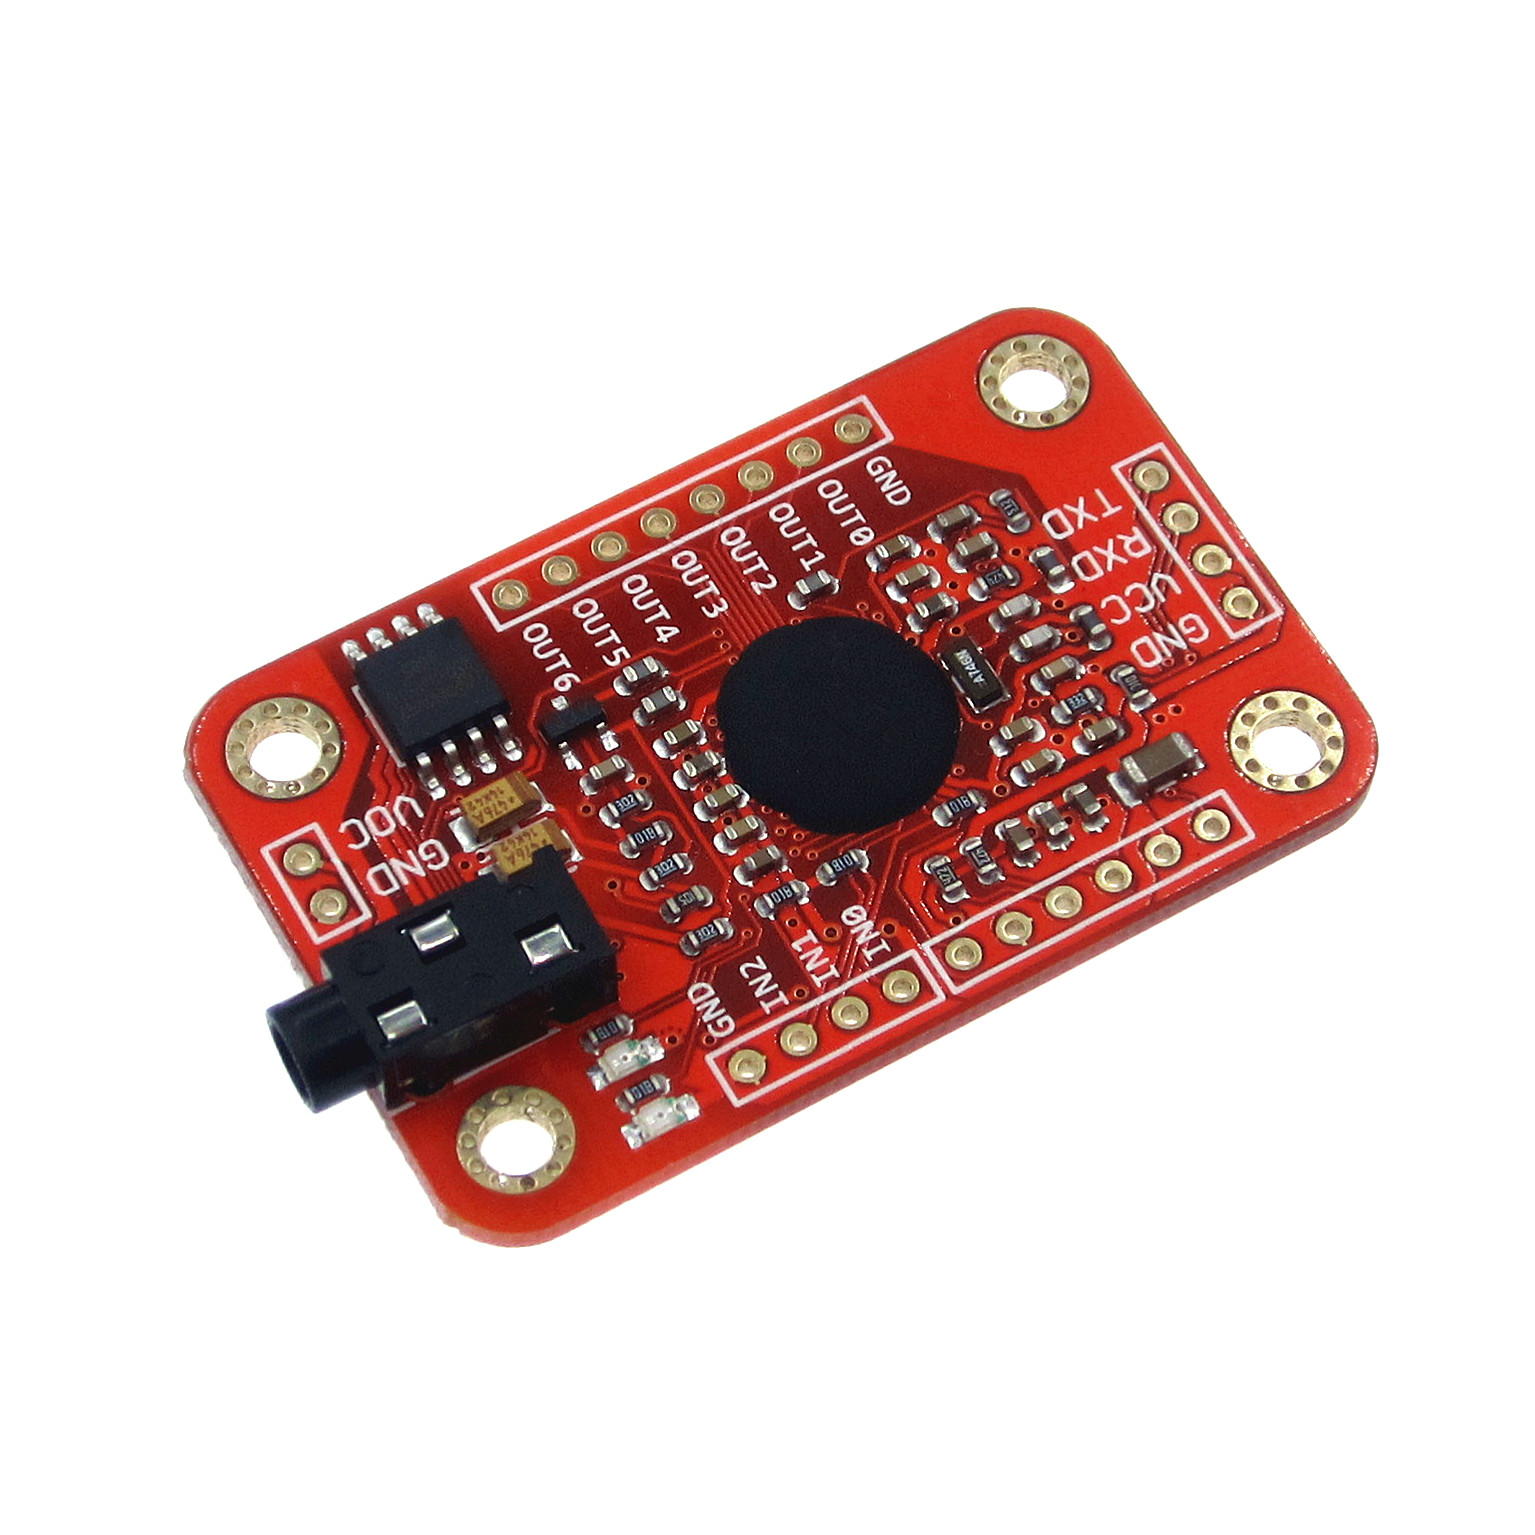 Image 2 - 1set Speed Recognition, Voice Recognition Module V3, compatible with Ardmodulerecognitionmodule voice recognition -